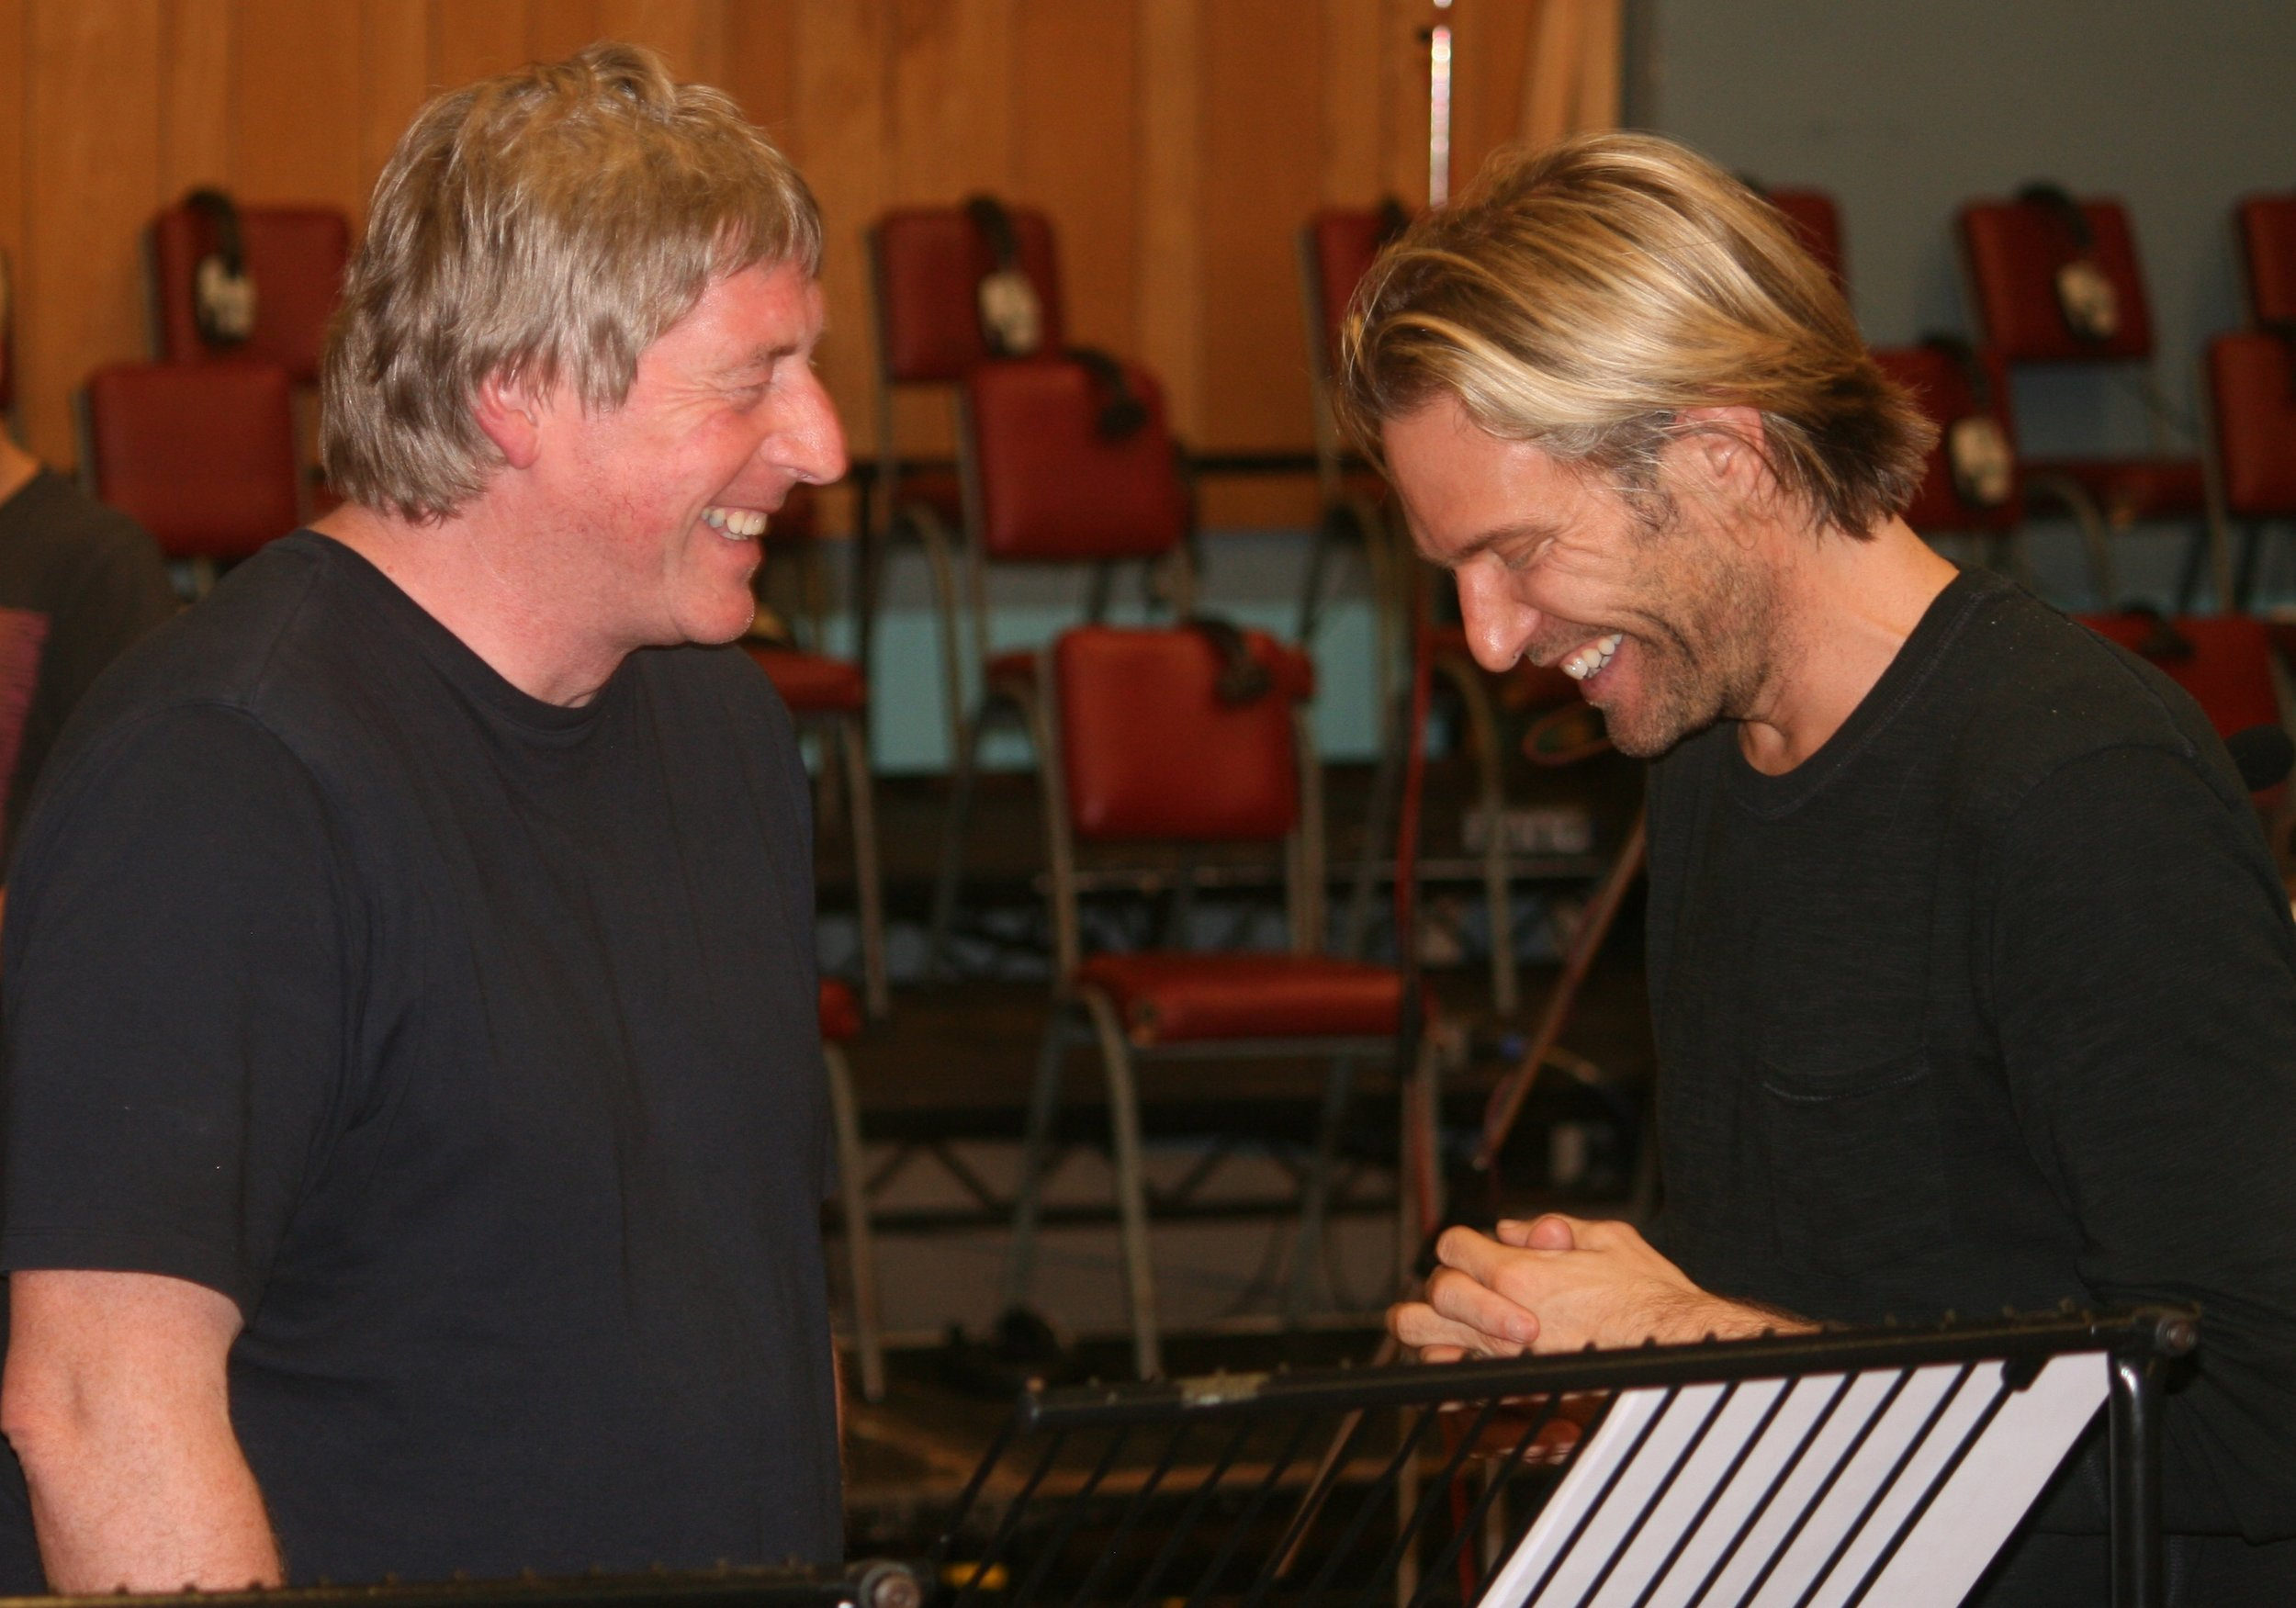 David with Eric Whitacre at Abbey Road Studios